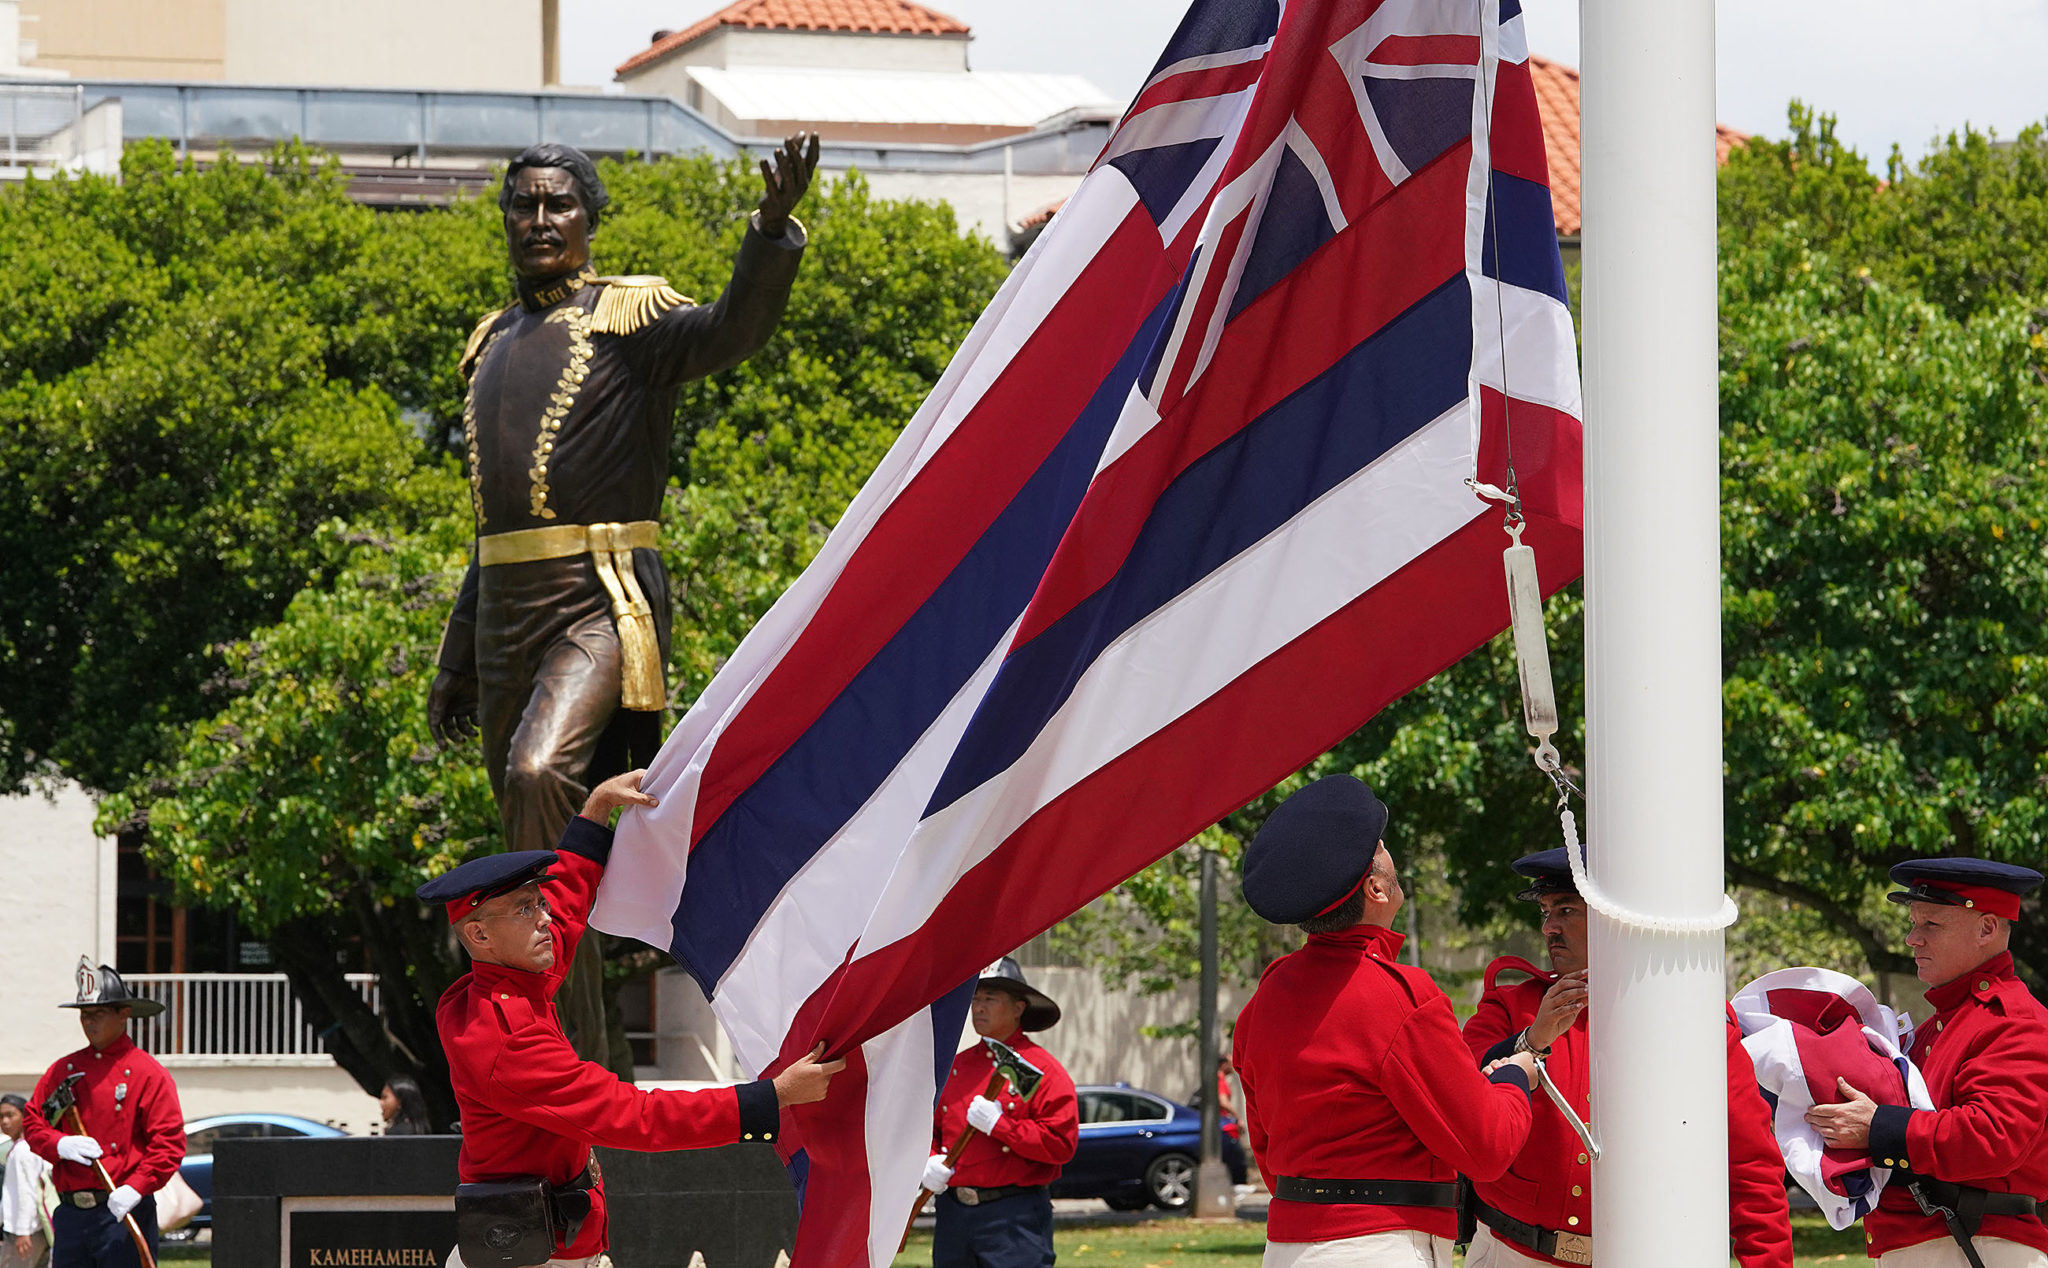 <p>The dedication ceremony included a re-enactment of the lowering of the British flag and the raising of the Hawaiian flag by members of the Hawaii Civil War Round Table.</p>